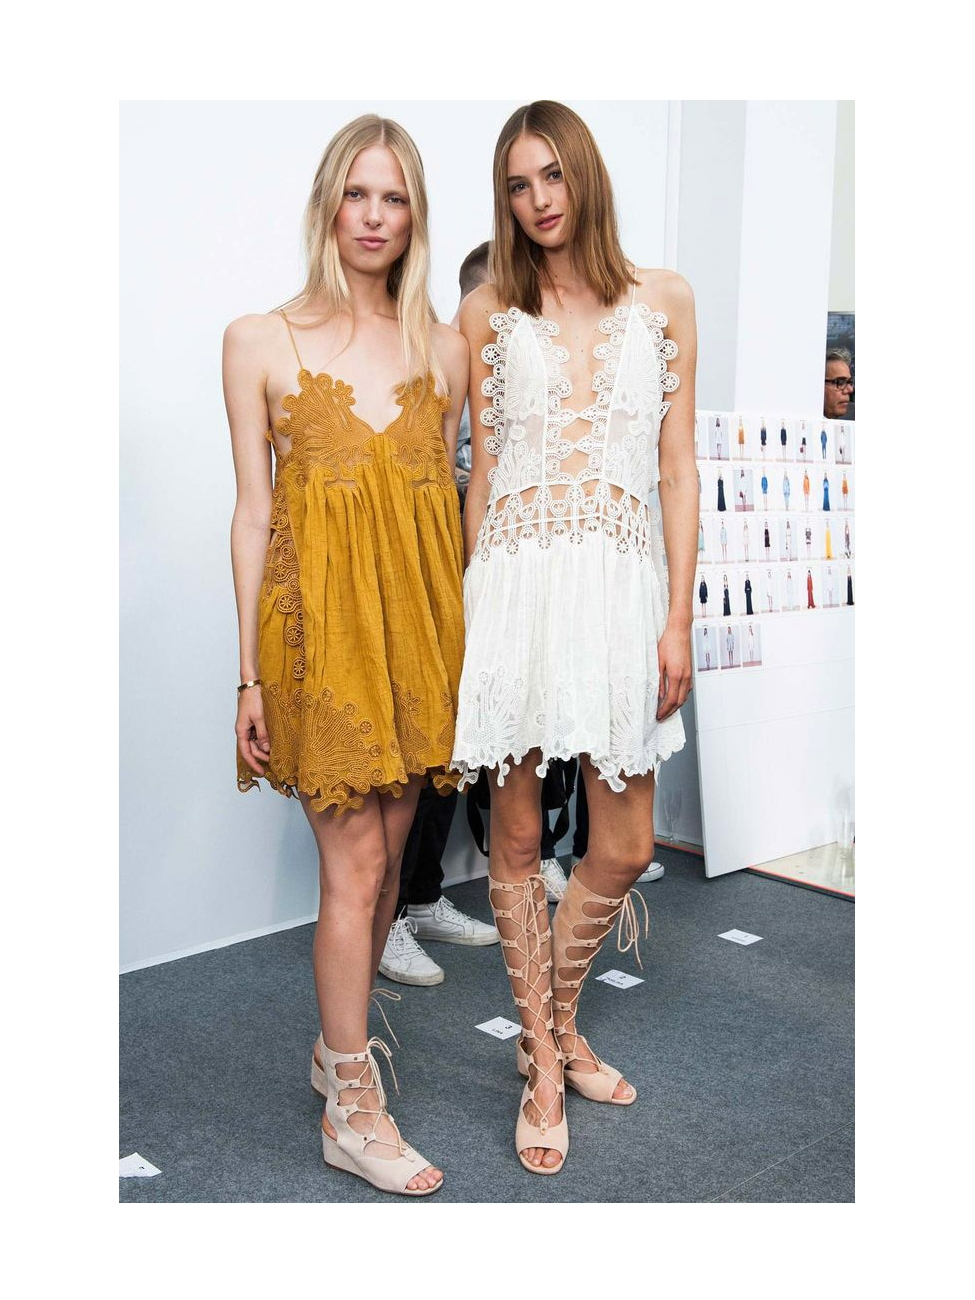 a168fd85198 Louise Paris - CHLOE FOSTER Nude beige suede lace-up wedge sandals Retail  price €750 Size 36.5